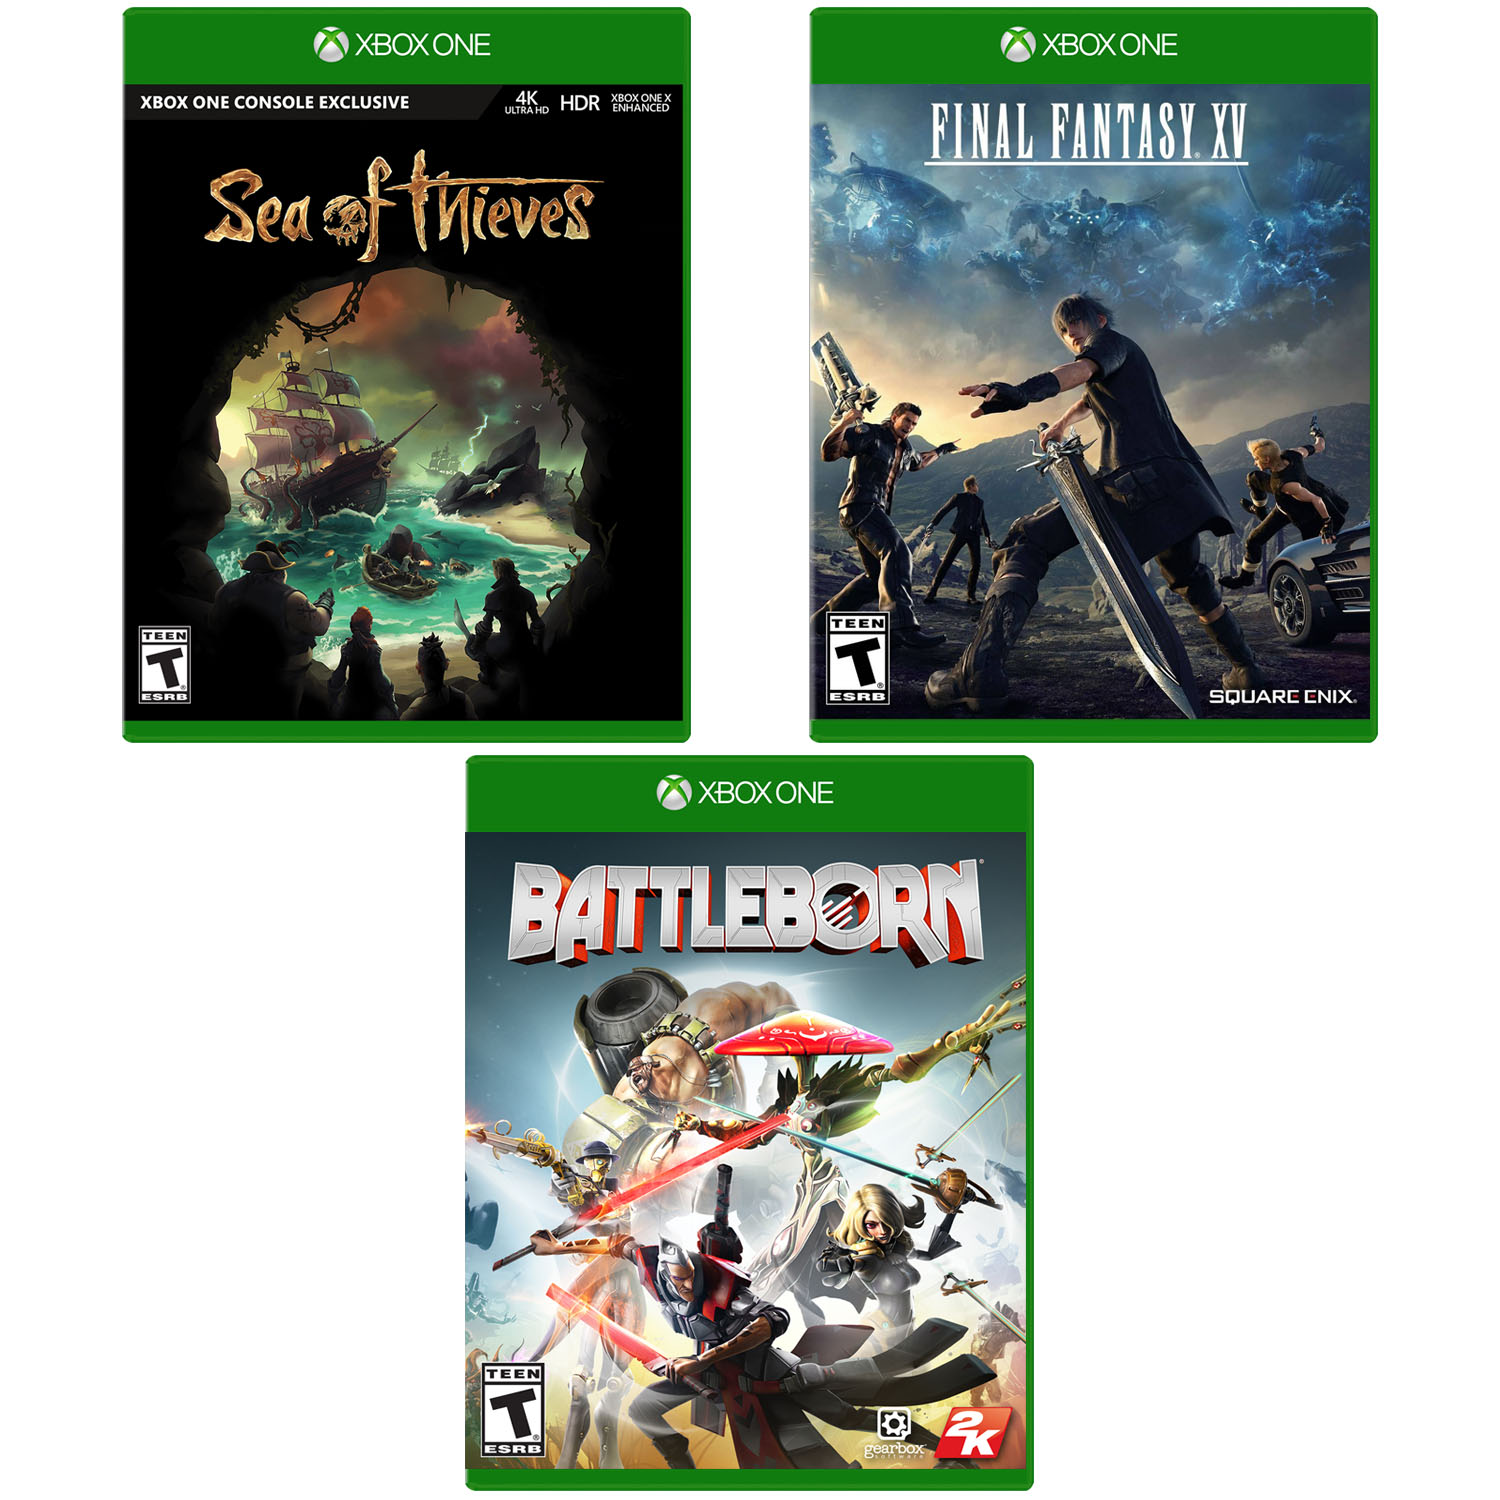 XBOX BUNDLE: Sea of Thieves/Final Fantasy XV/Battleborn BUNDLE, Xbox One, Preowned/Refurbished